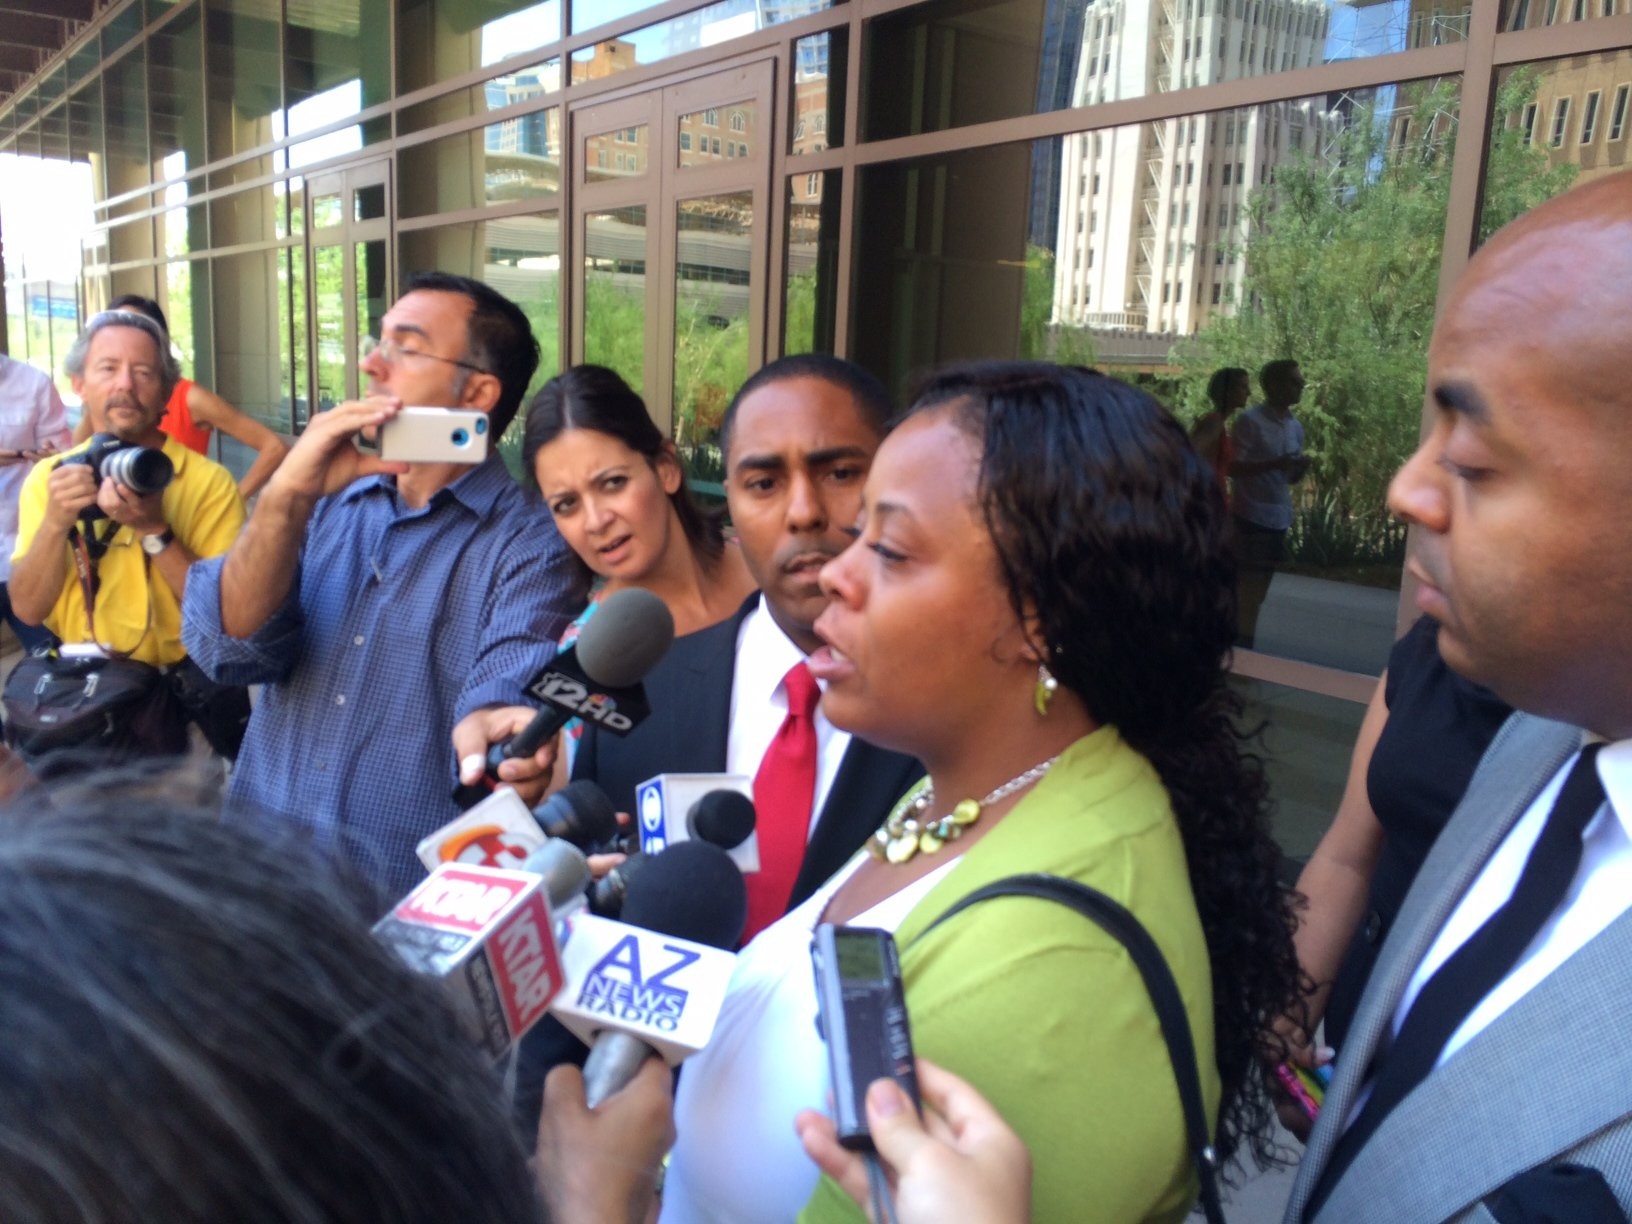 Shanesha Taylor with lawyer following hearing (Source: CBS 5 News)